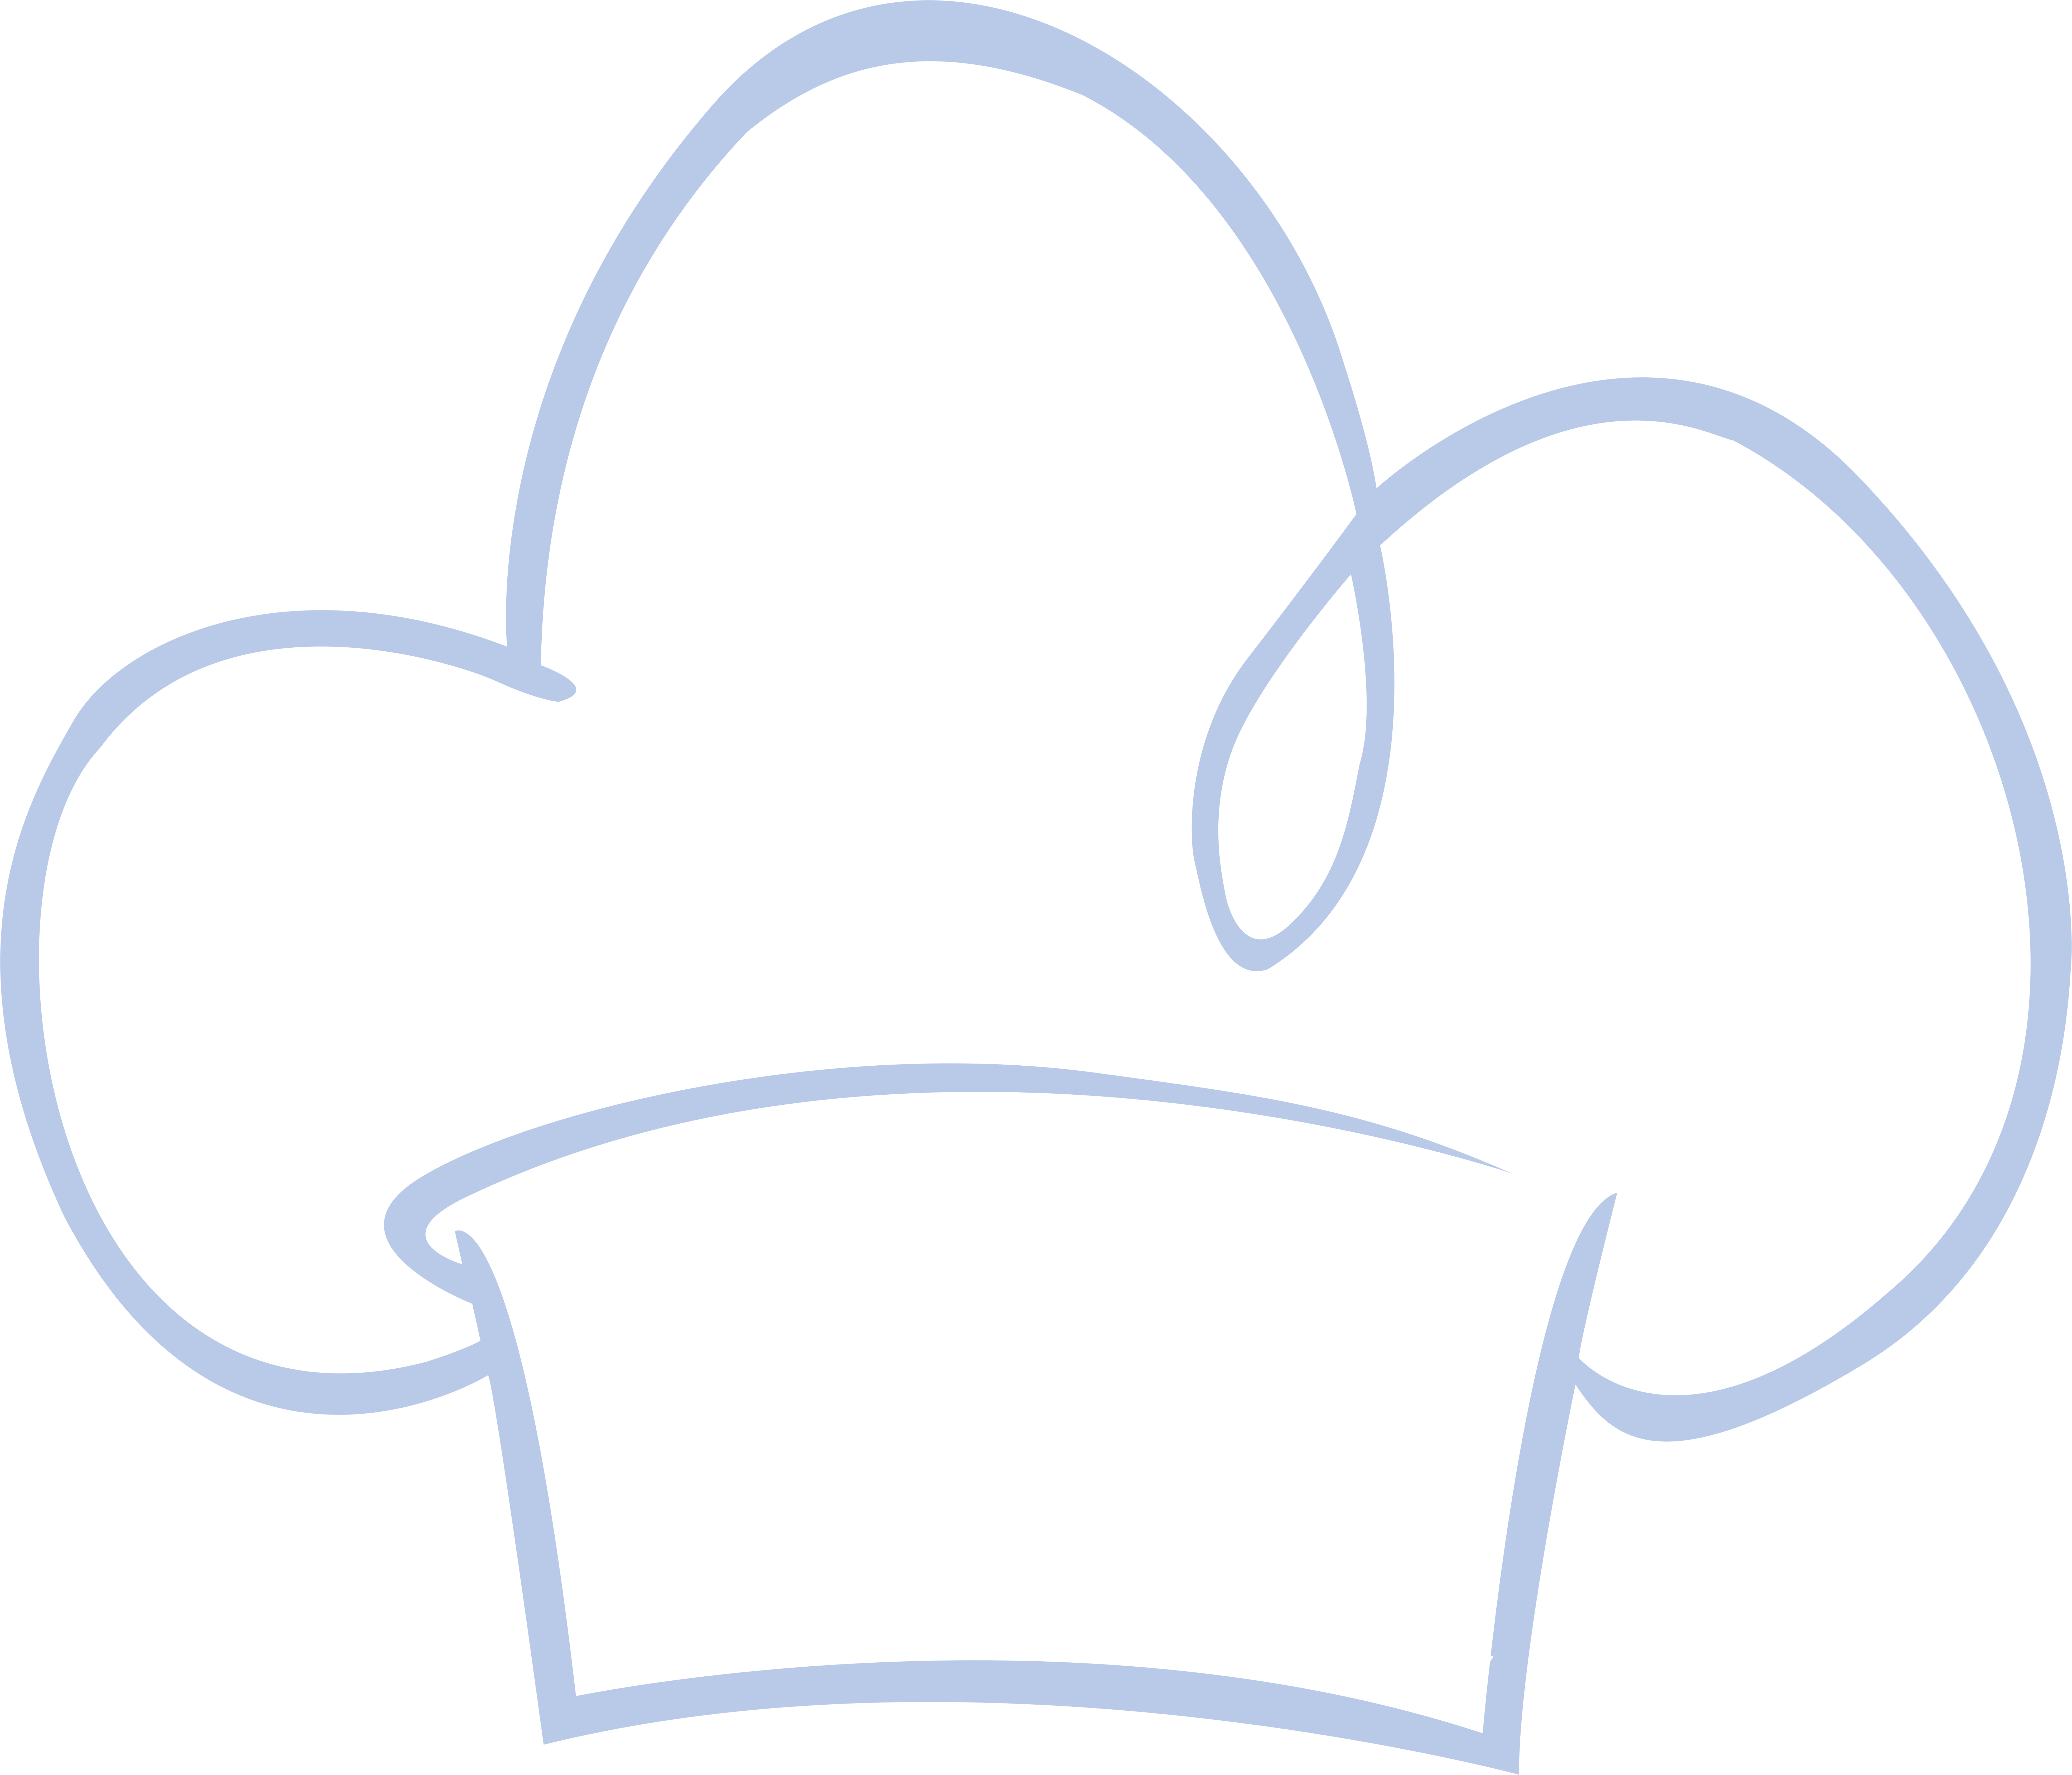 cooking hat clipart - photo #19